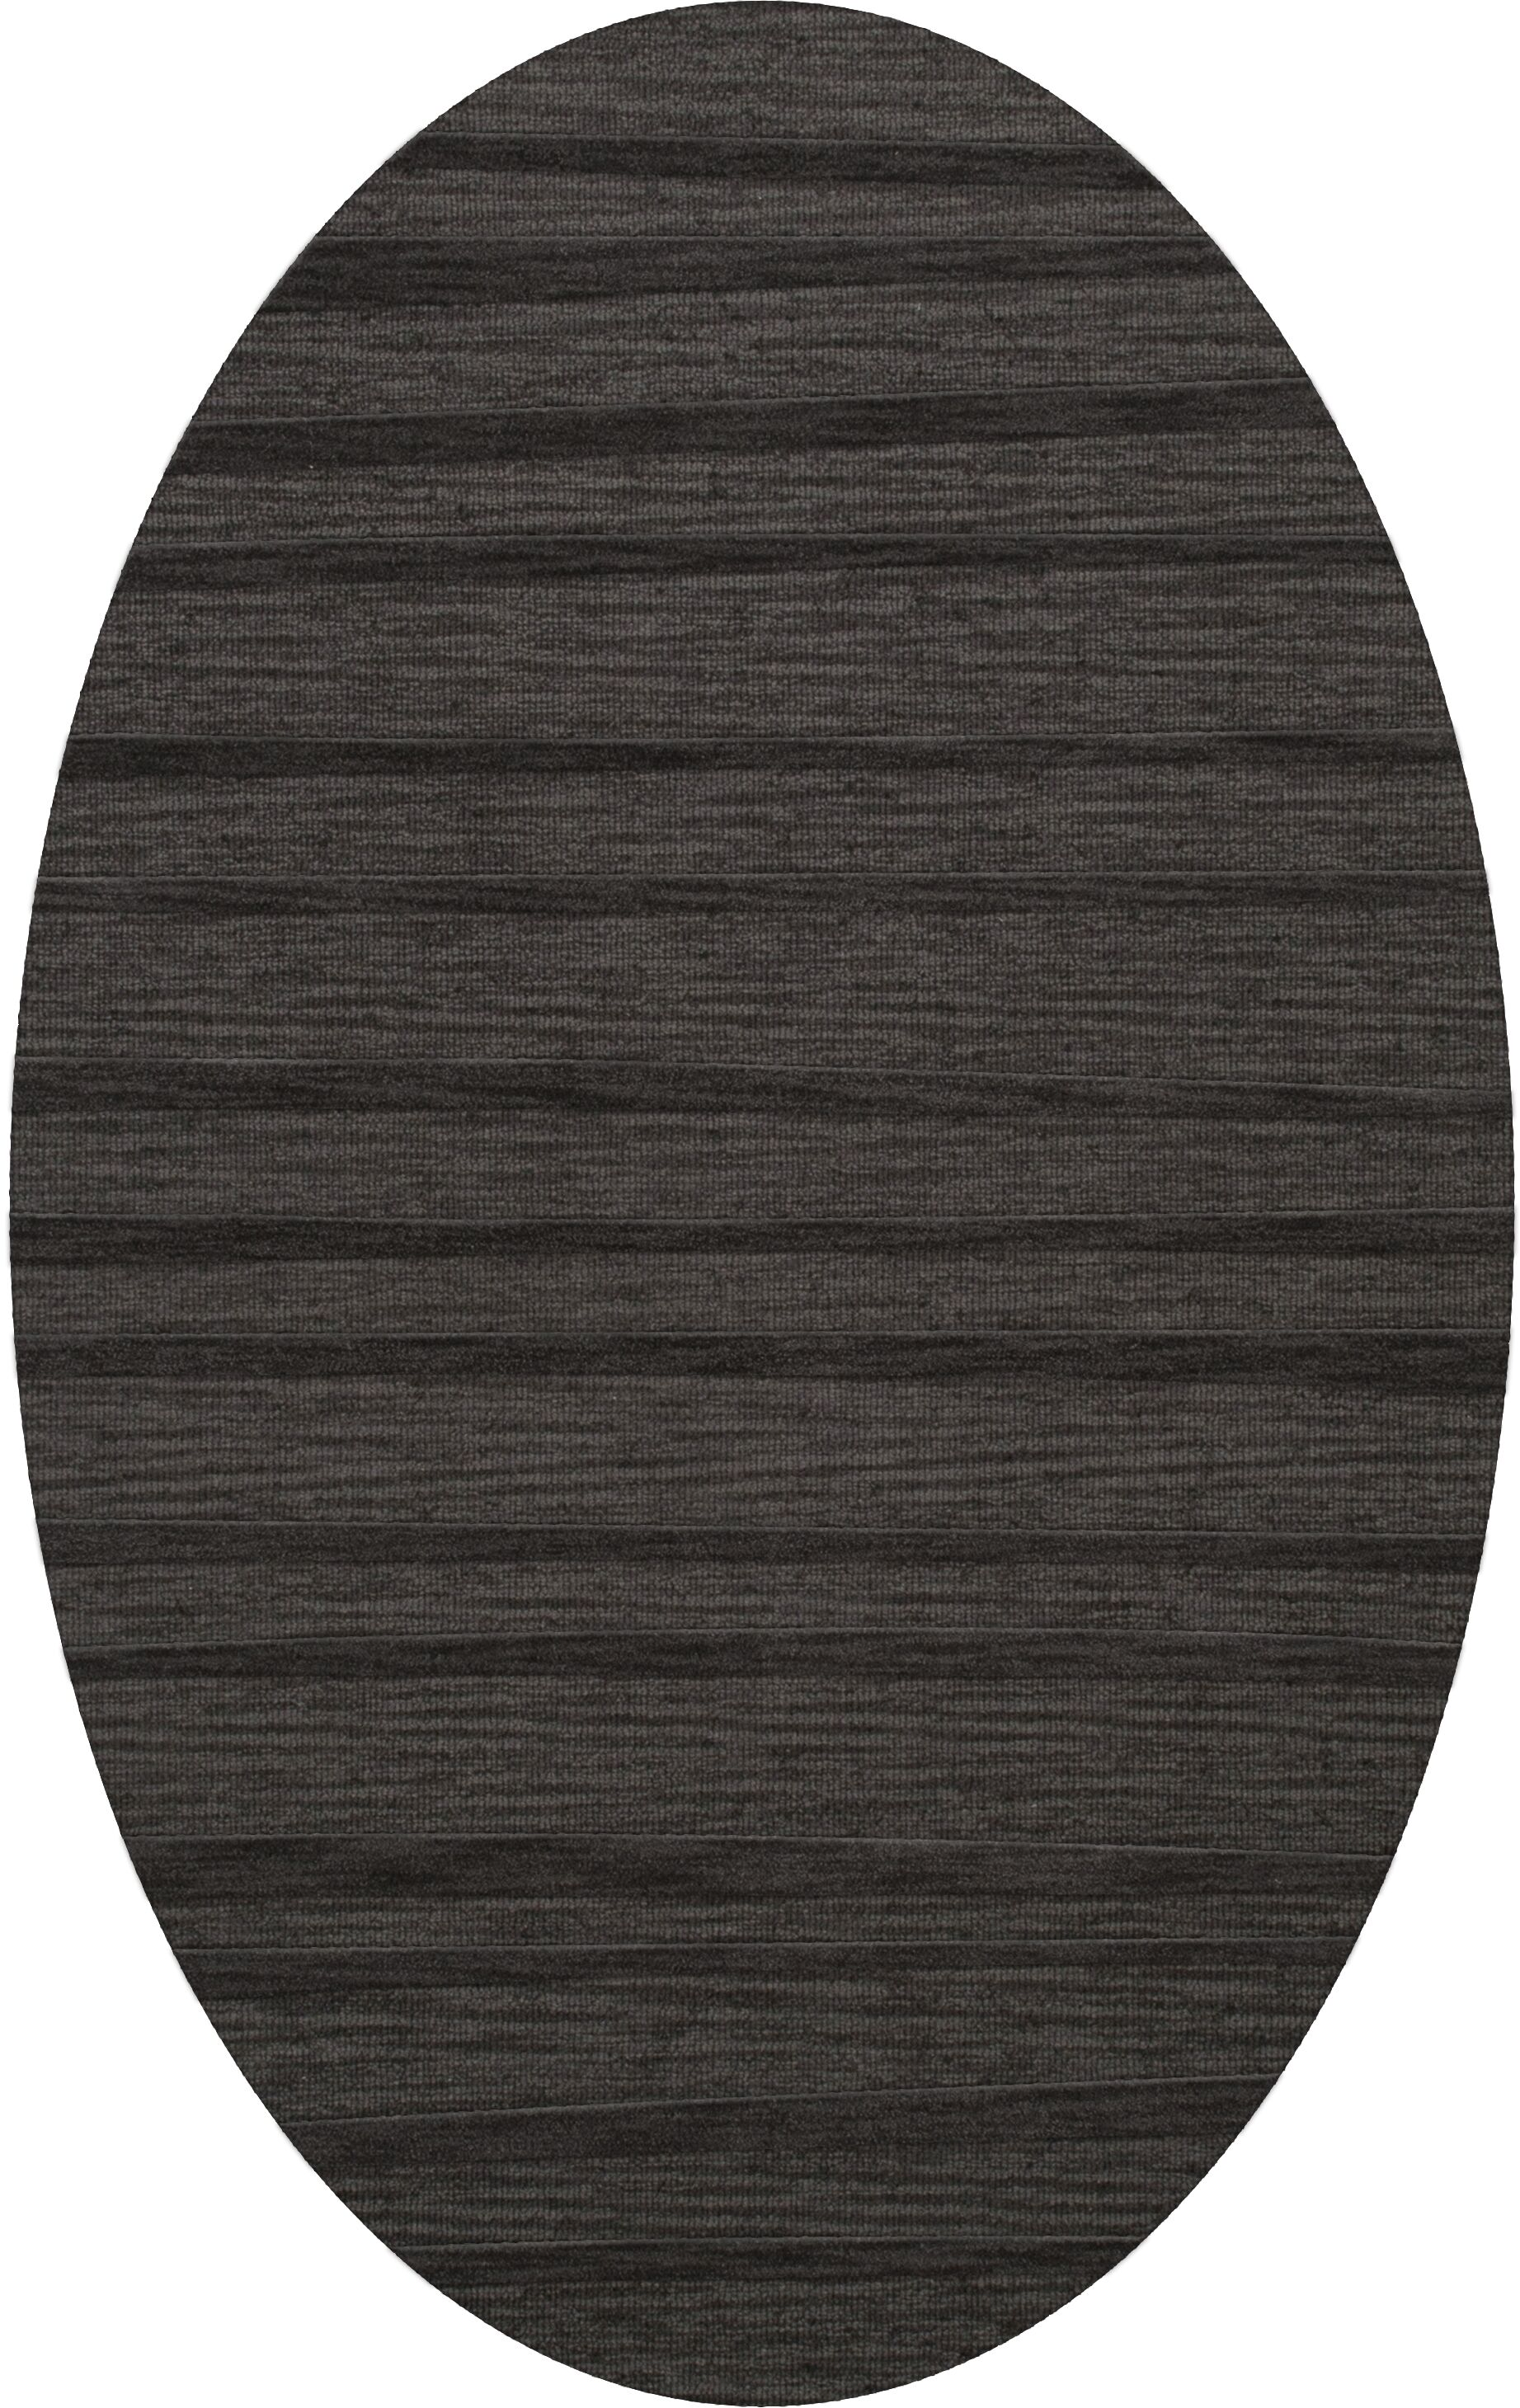 Dover Tufted Wool Ash Area Rug Rug Size: Oval 12' x 15'